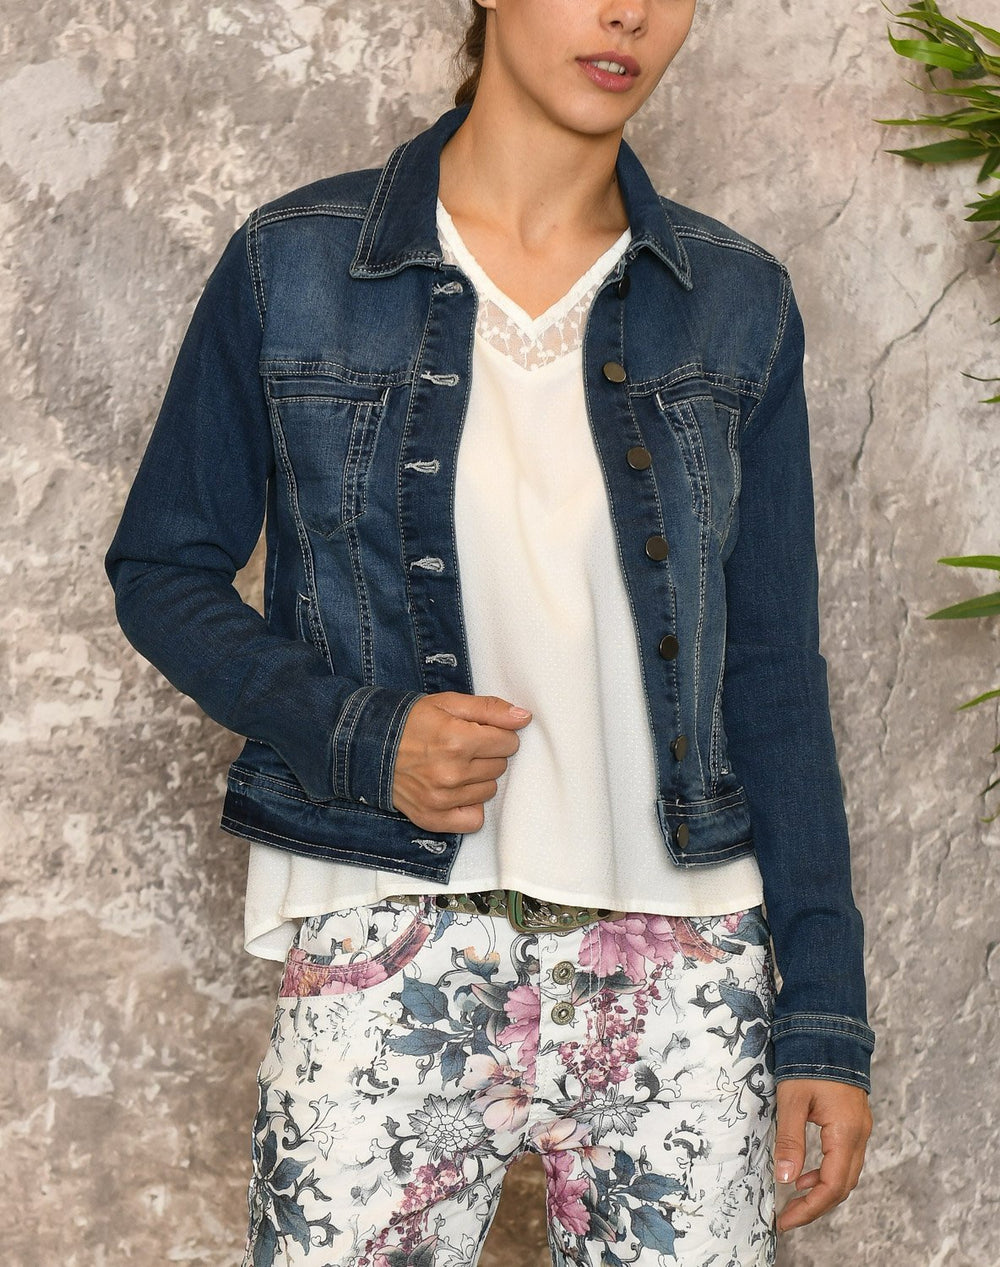 Fransa FRivstitch 1 jacket simple blue denim - Online-Mode